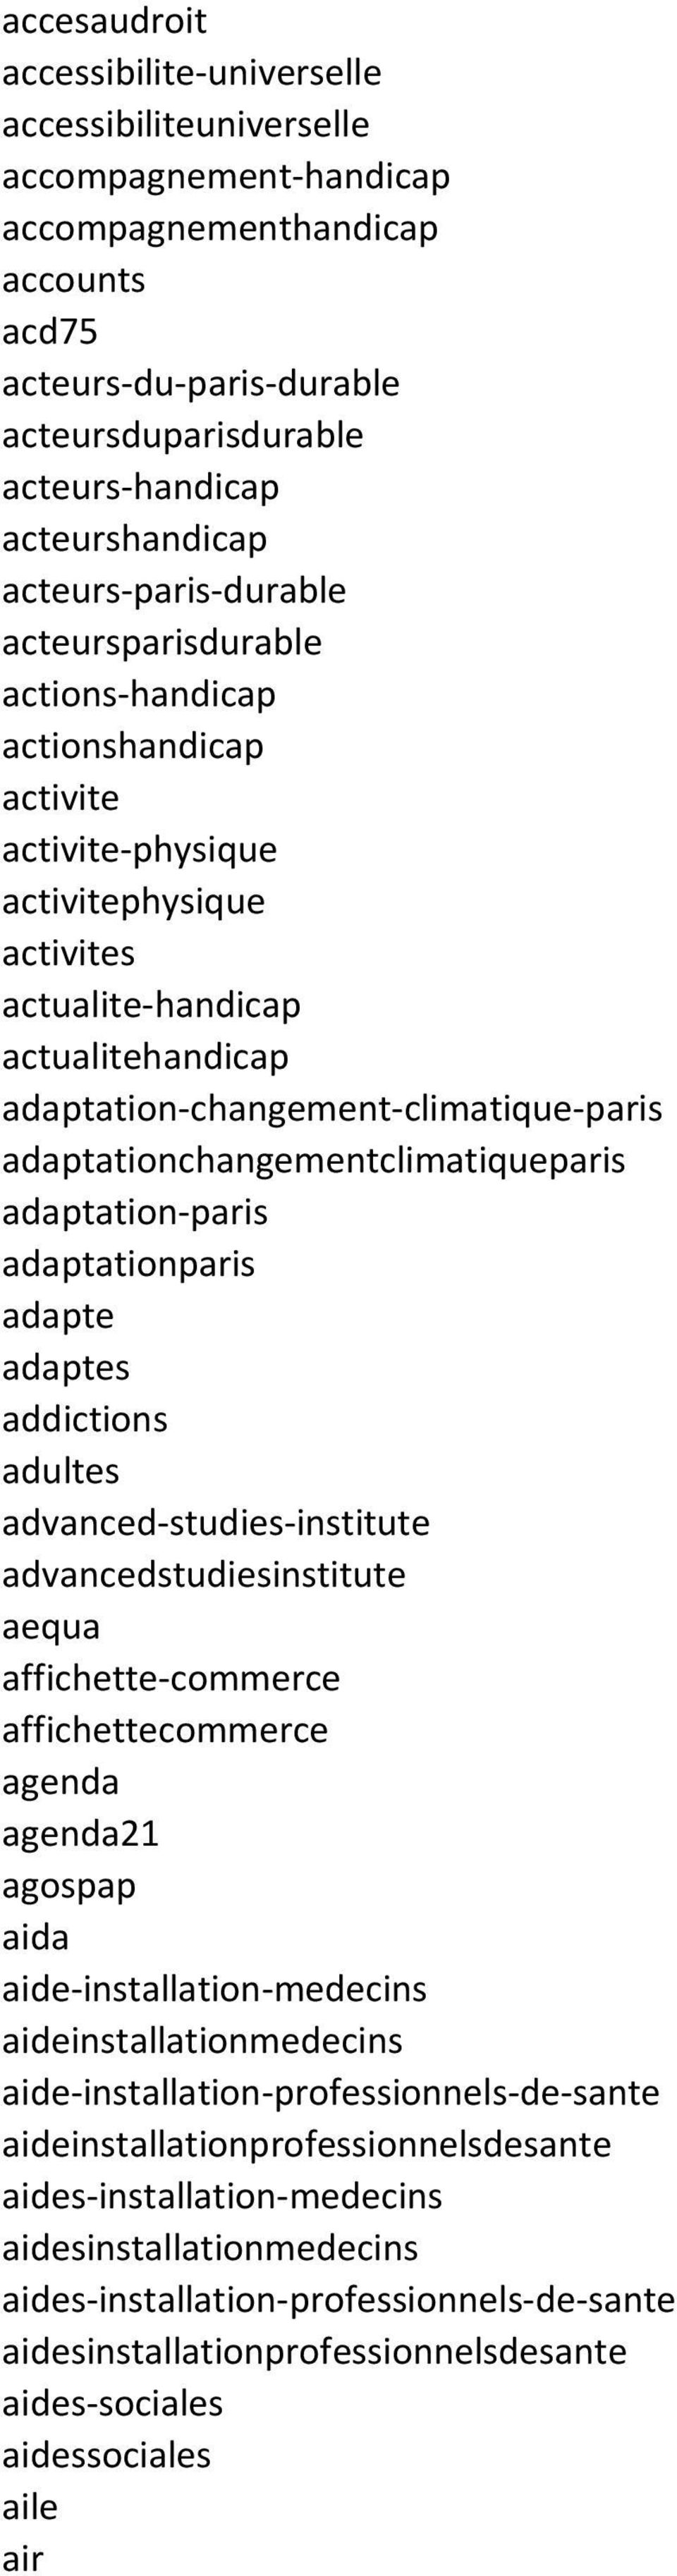 adaptation-changement-climatique-paris adaptationchangementclimatiqueparis adaptation-paris adaptationparis adapte adaptes addictions adultes advanced-studies-institute advancedstudiesinstitute aequa